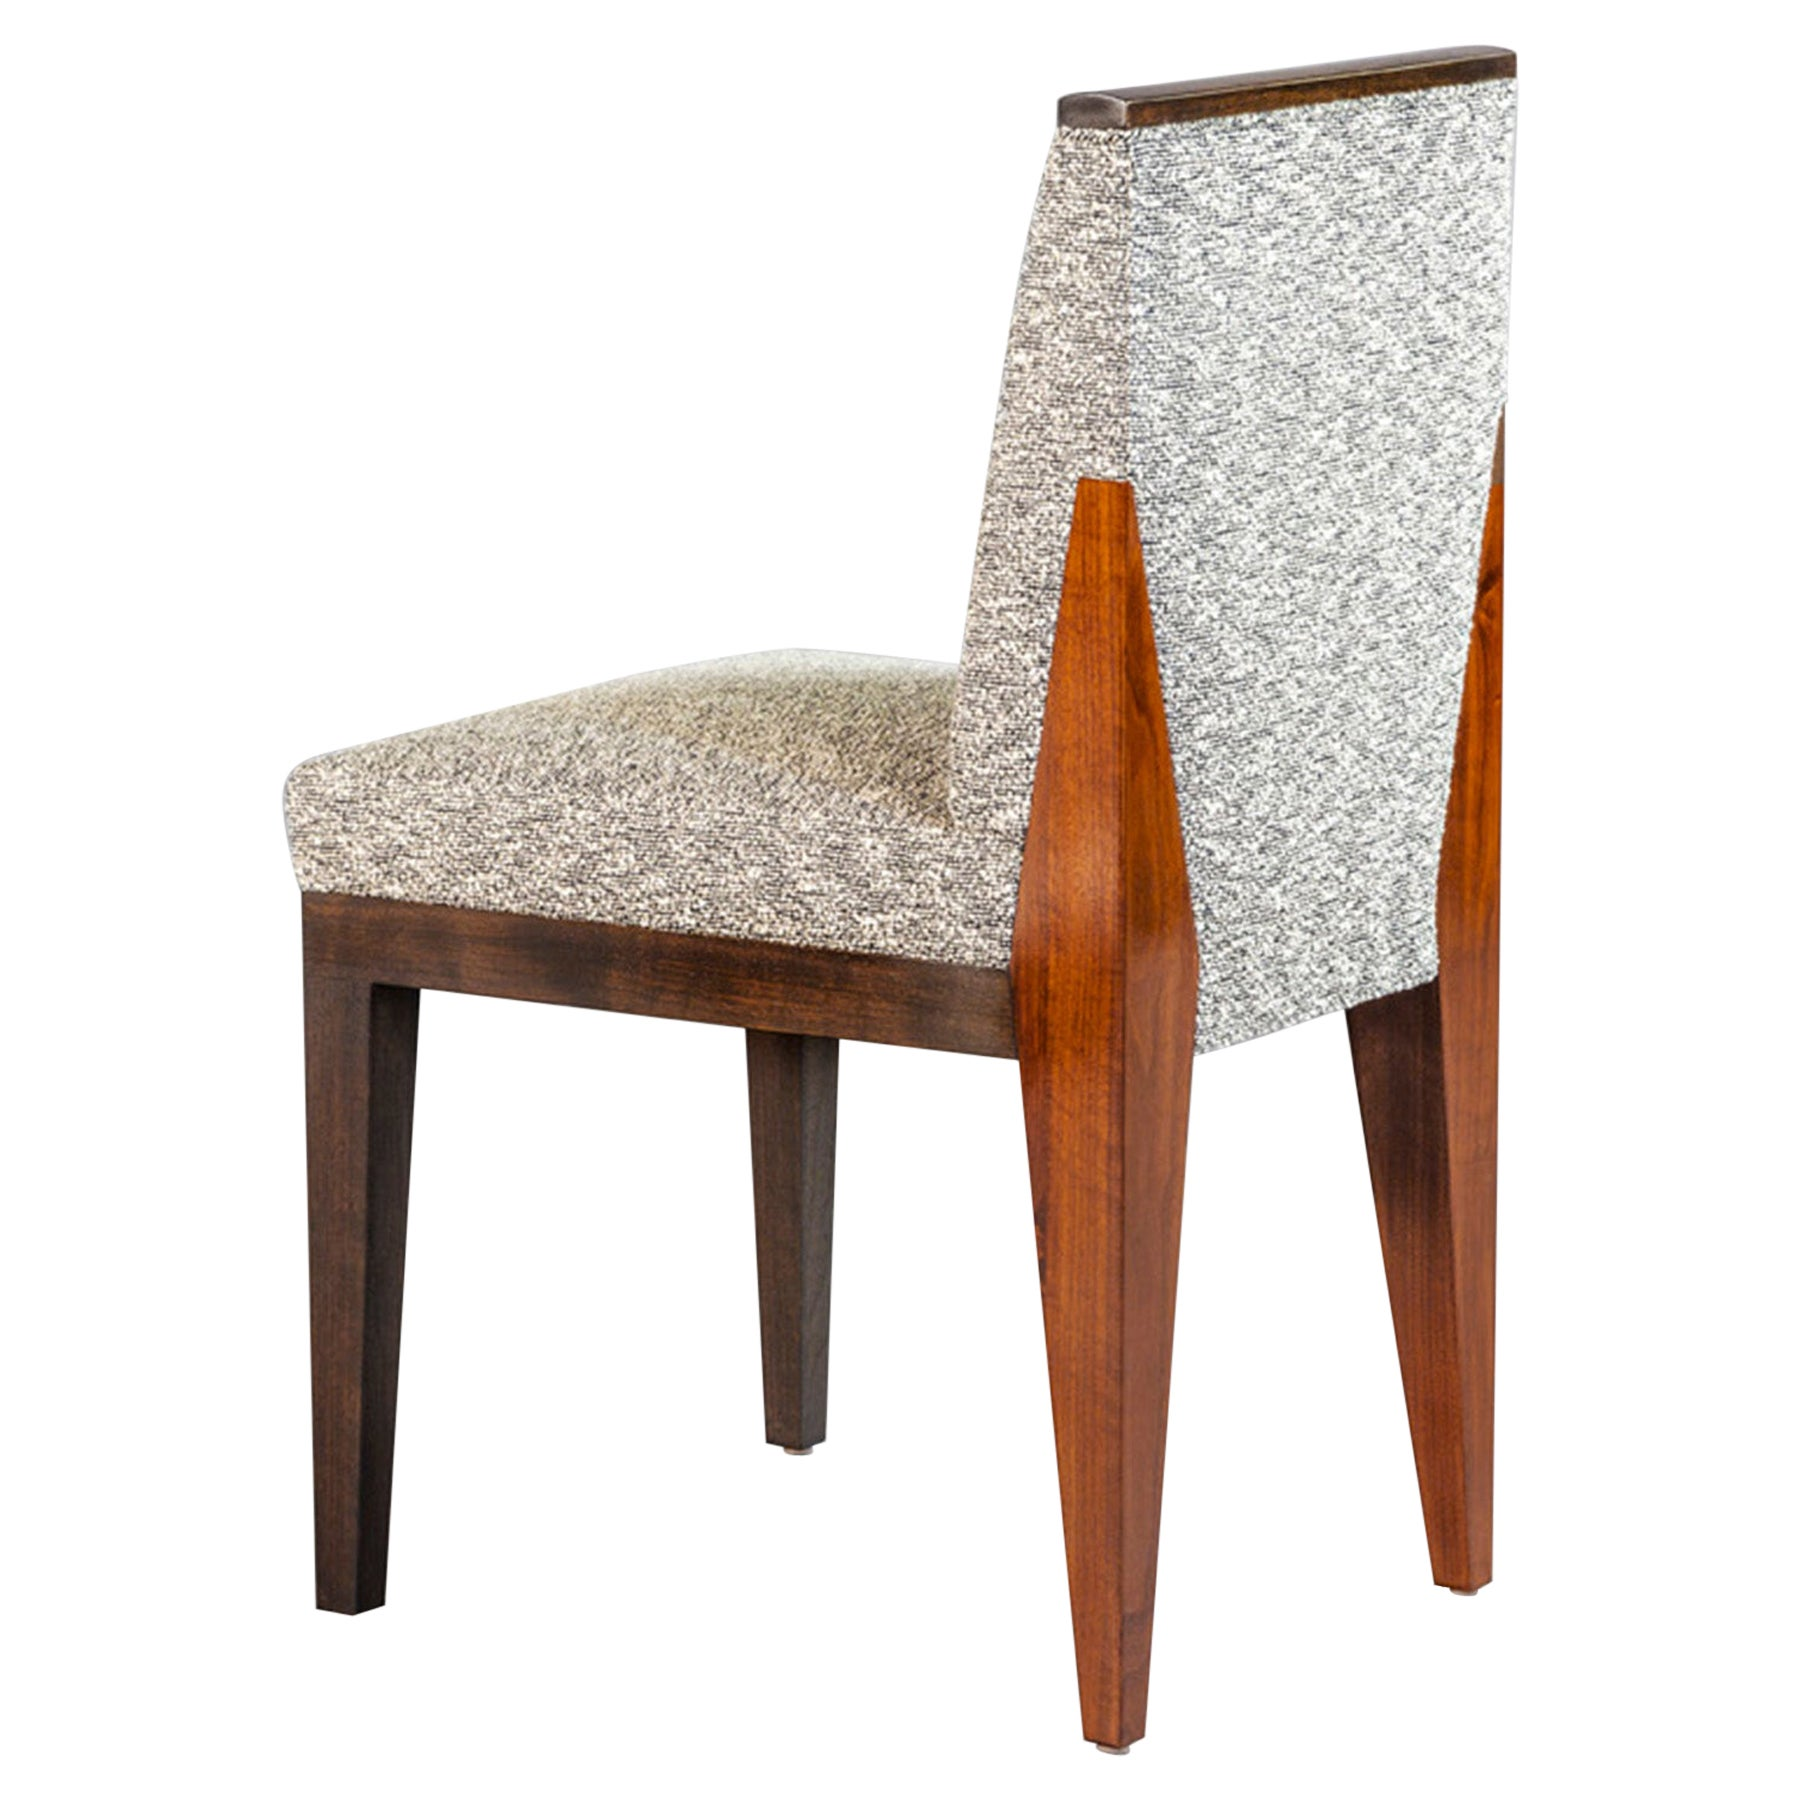 """Lasca"" Dining Chair by Robert Marinelli, edited by BGA, USA, 2019"